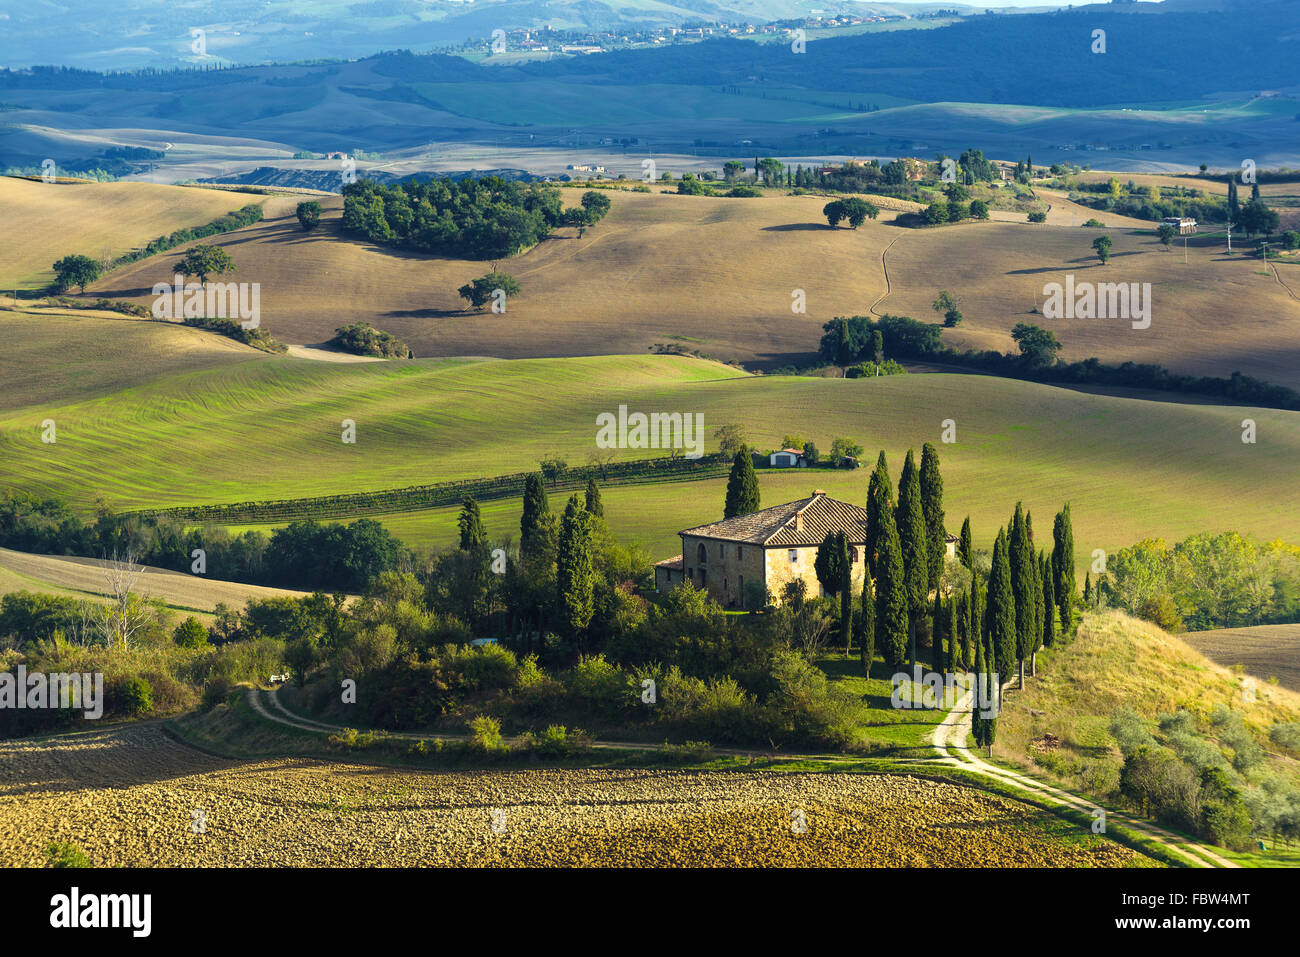 Plowed fields in the picturesque landscape of Italy. Tuscany landscape. - Stock Image